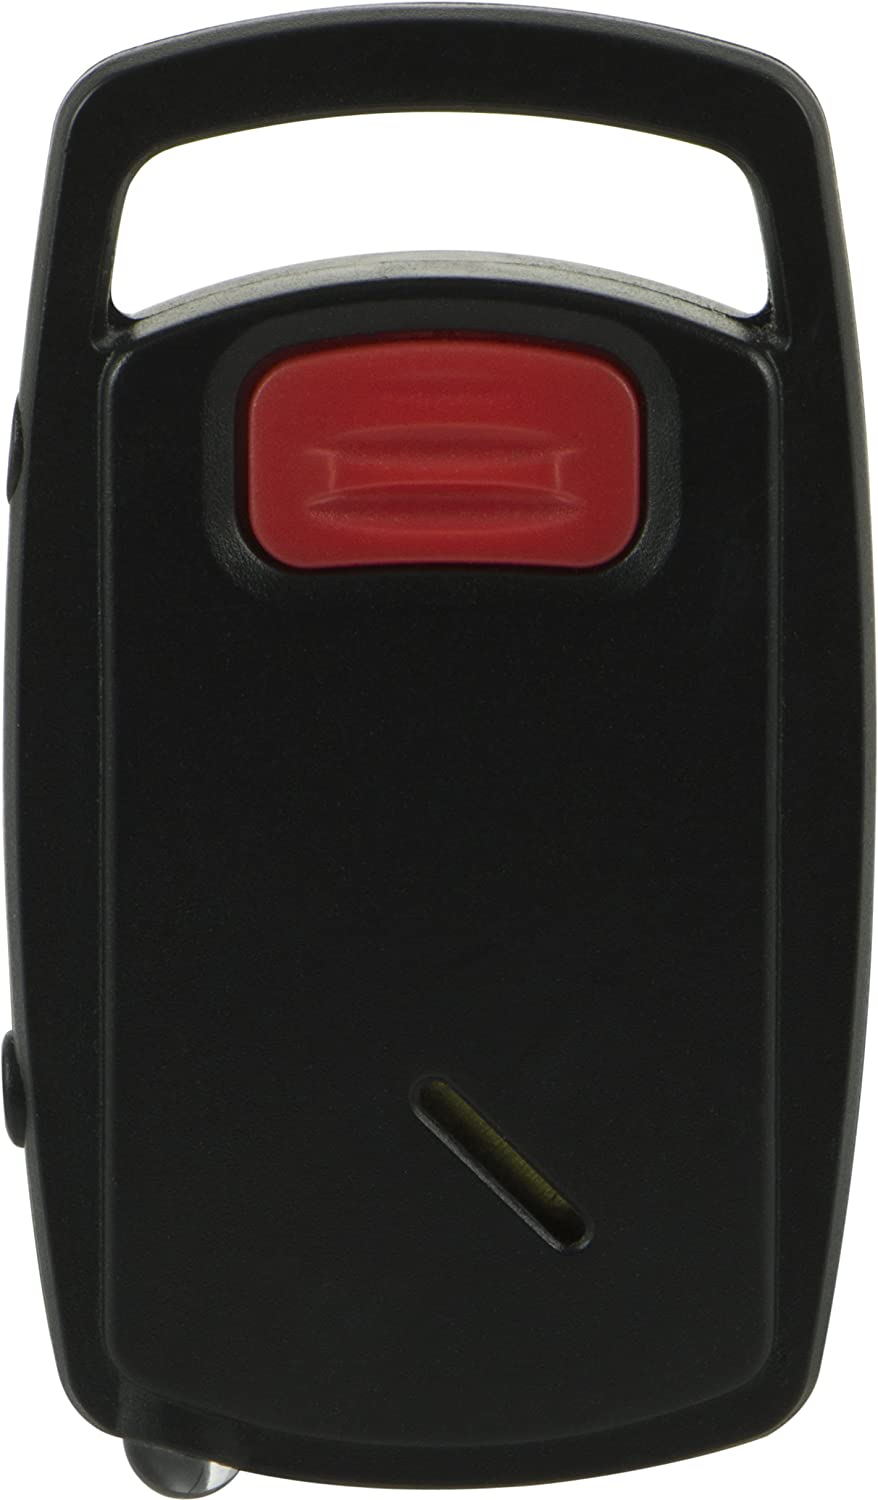 GE Push-Button Keychain Alarm, Built-In LED Light, Press Button to Activate, Portable Safety, Emergency, Self-Defense, Easy to Use, 45101